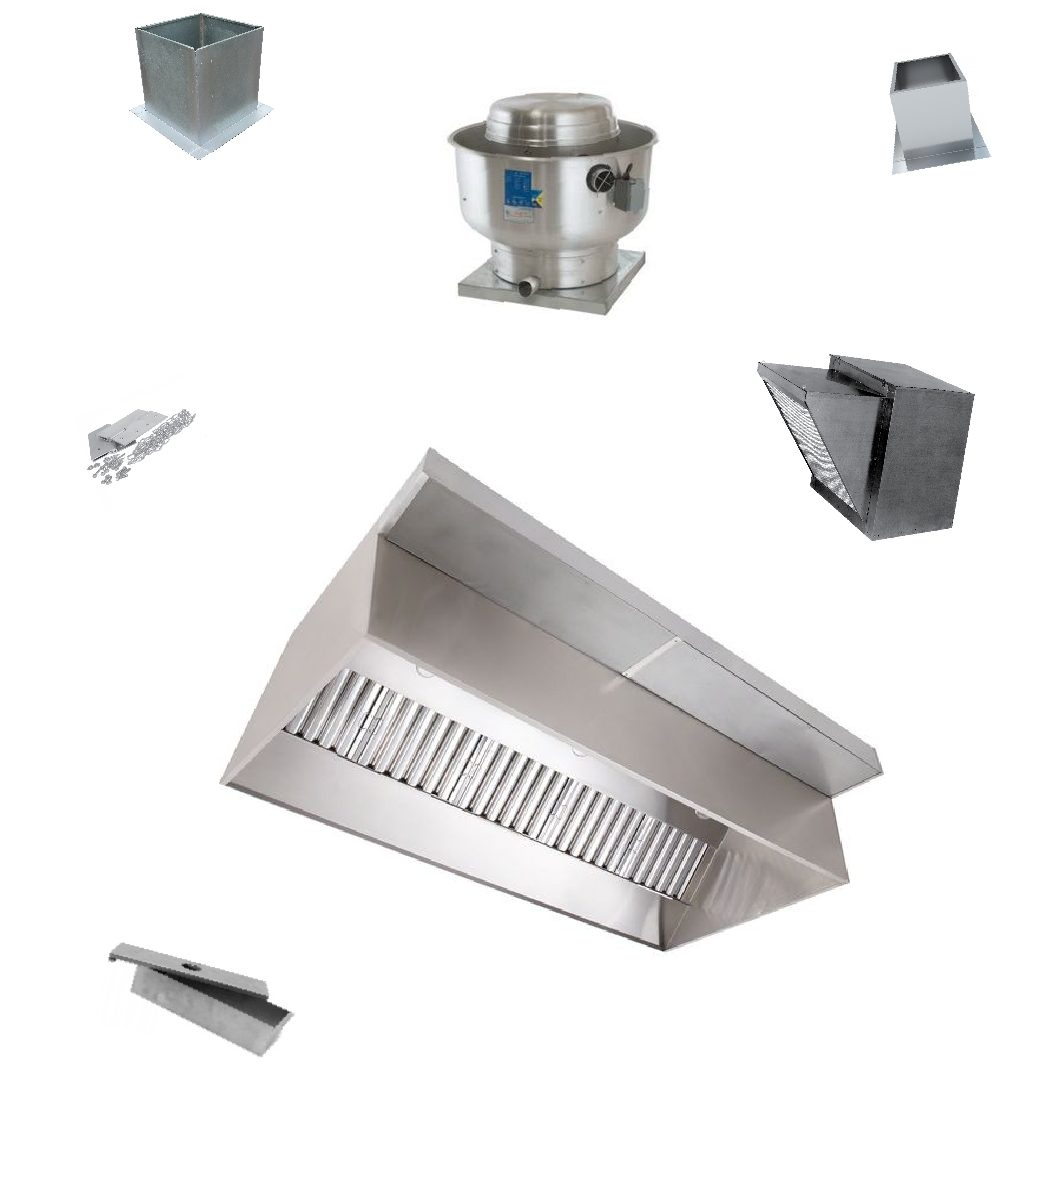 10 39 X 48 X 24 Short Cycle Commerical Kitchen Exhaust Hood System All Around Industry Supply